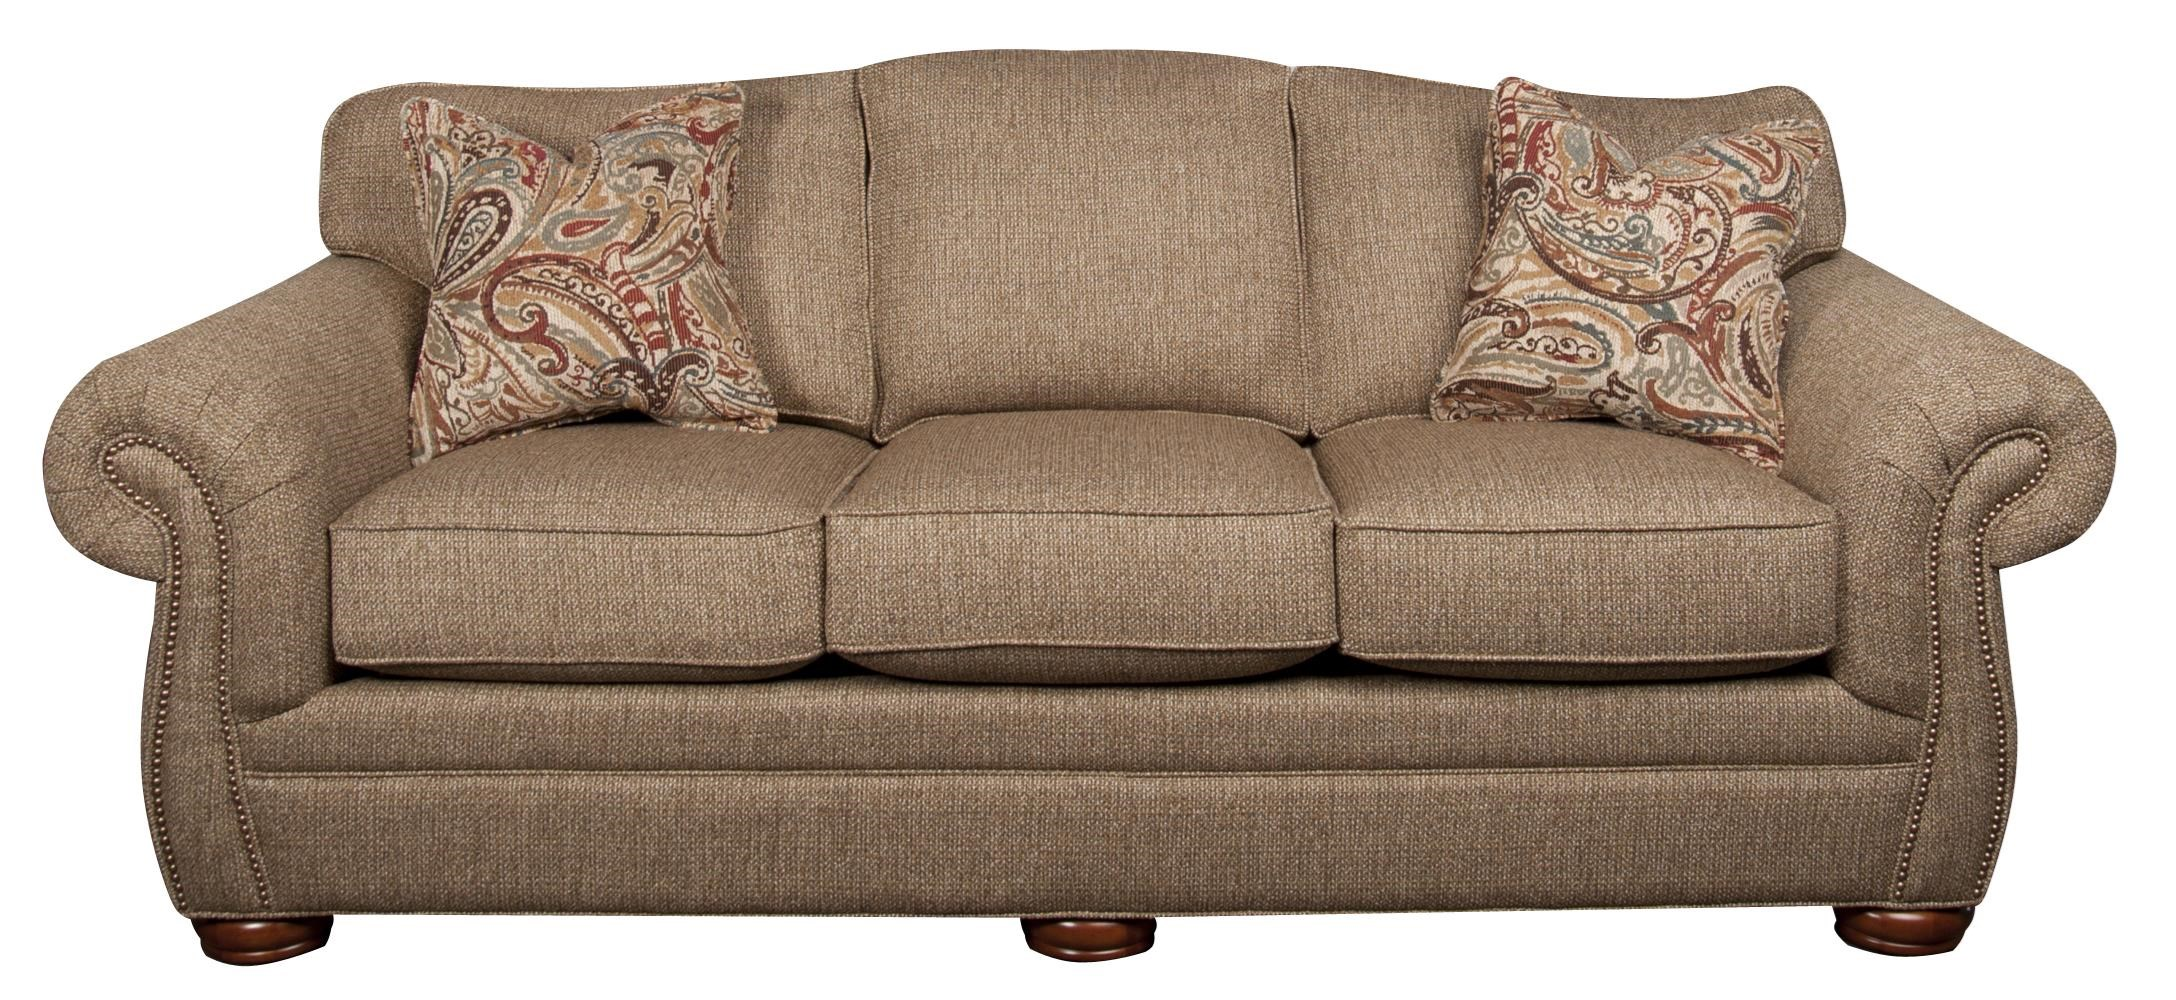 Main & Madison Rosemary Rosemary Classic Sofa - Item Number: 101276096